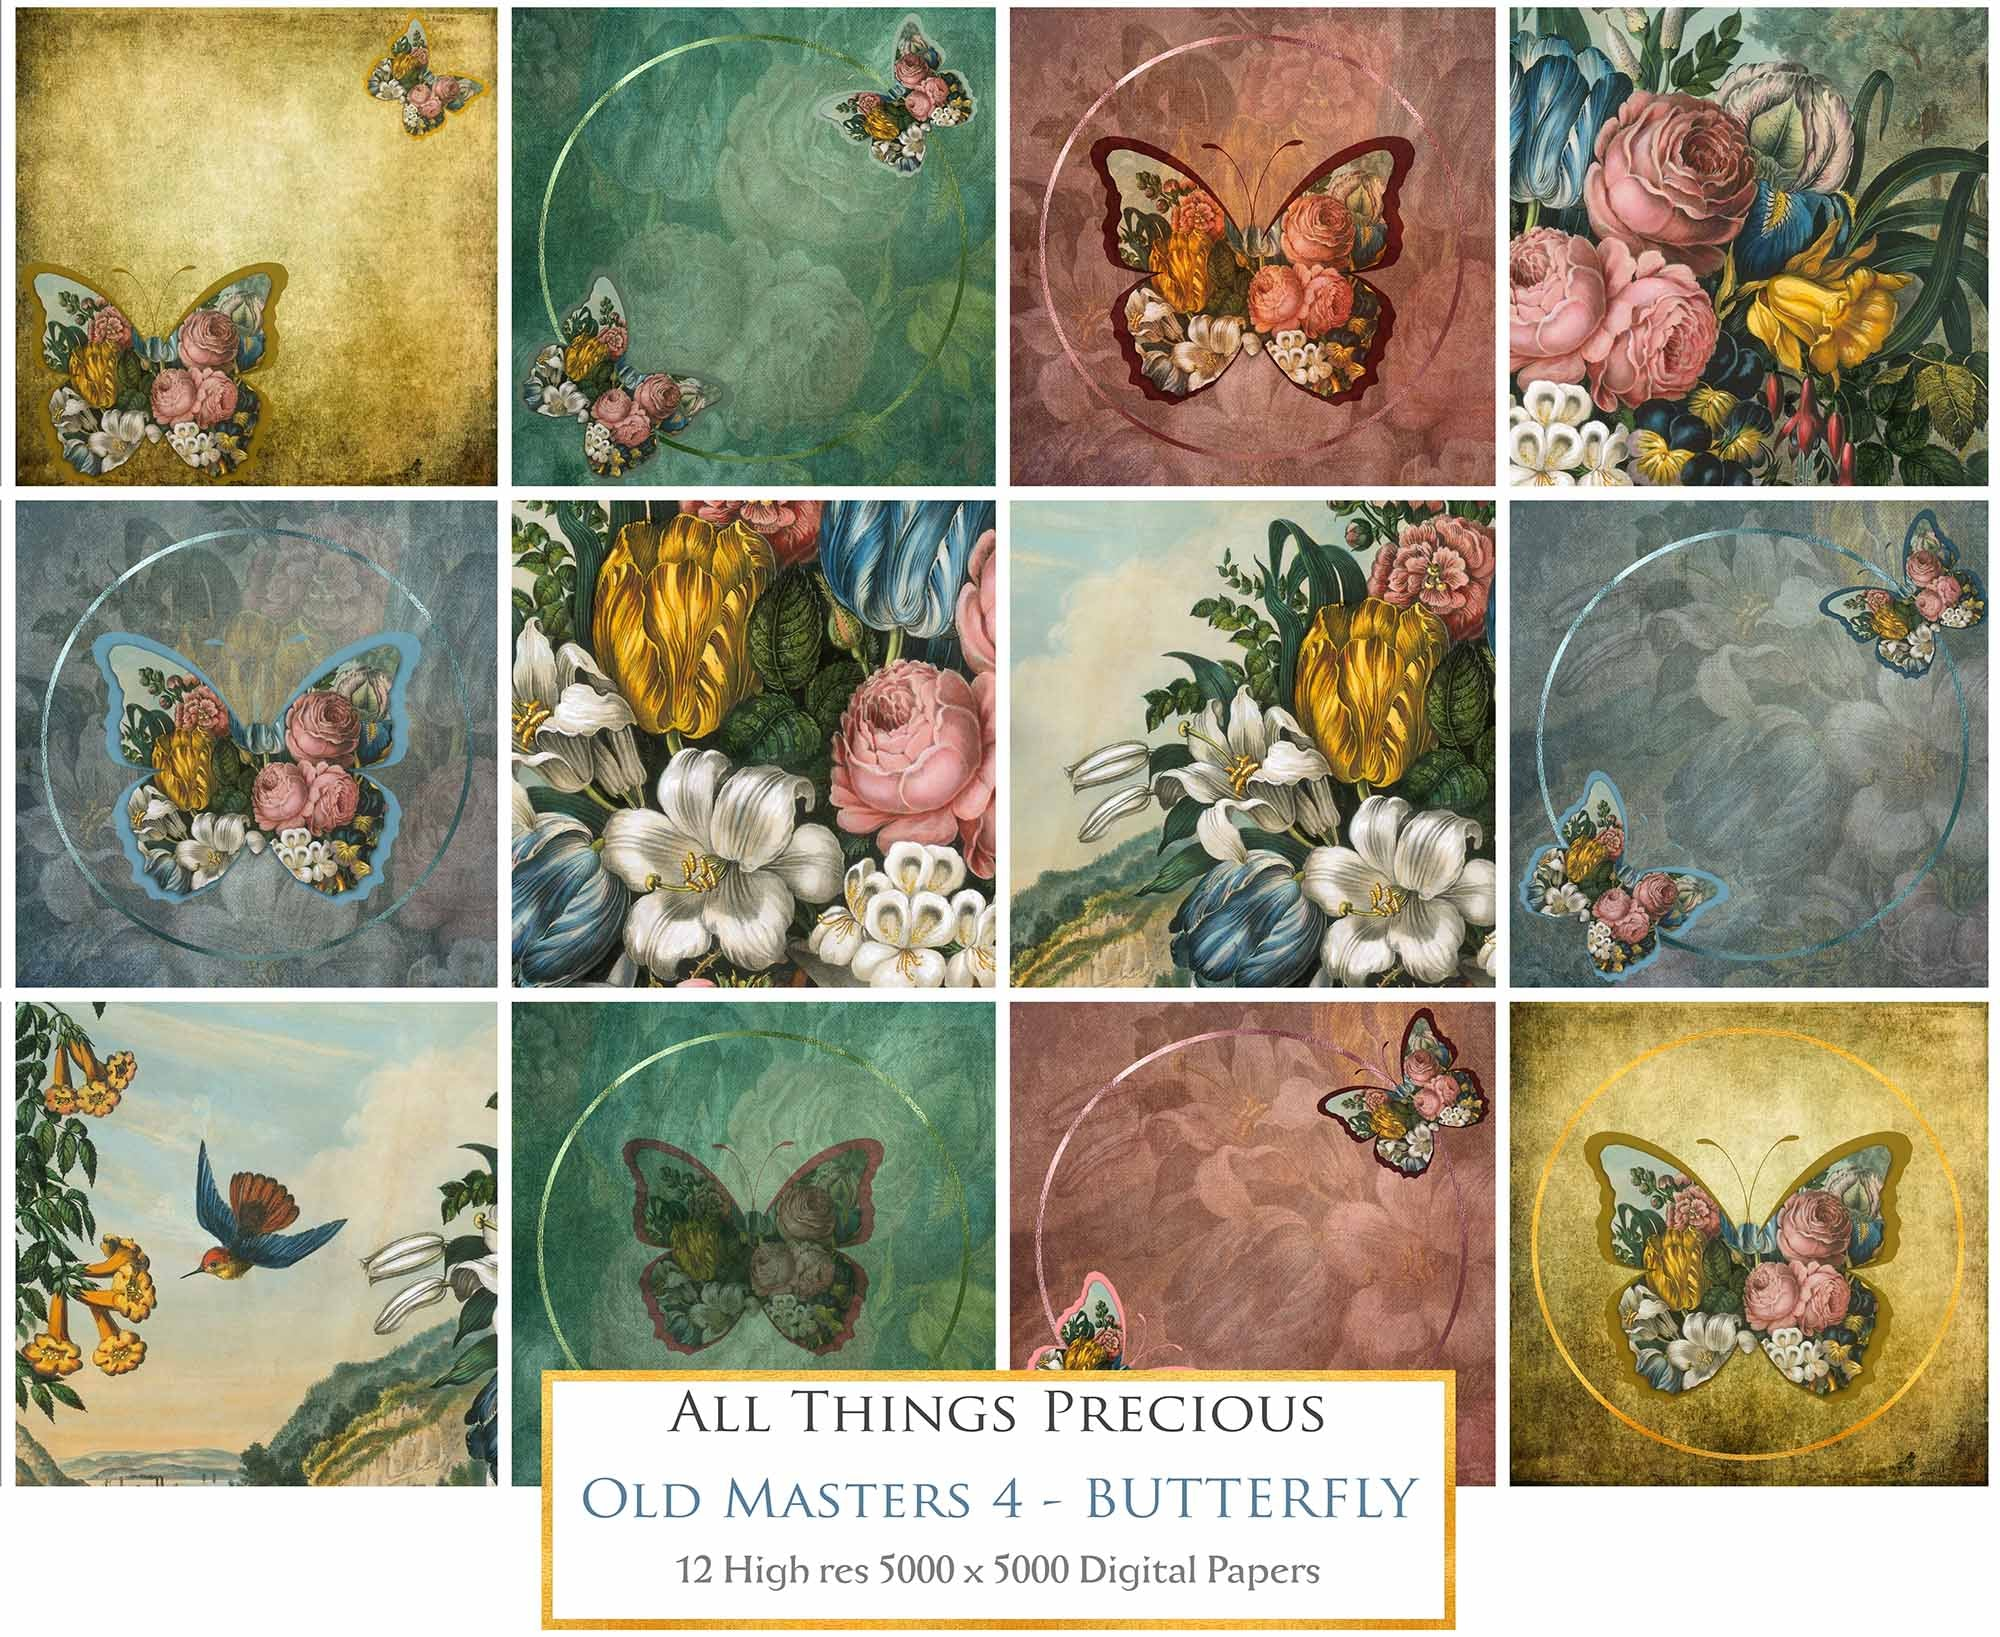 OLD MASTERS BUTTERFLY Set 4 - Digital Papers